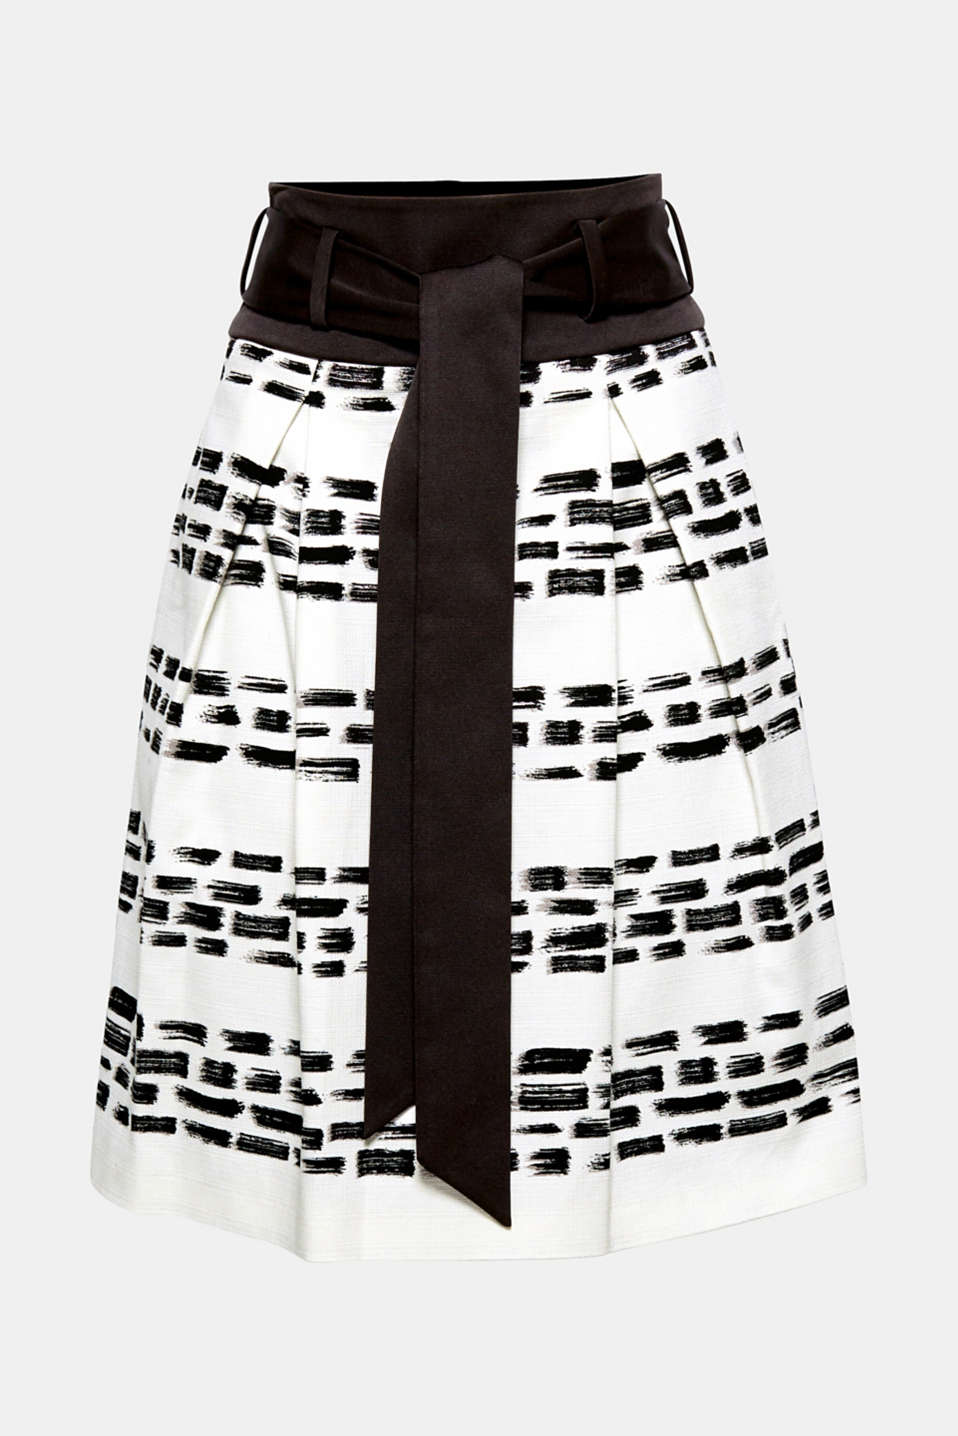 Modern chic: this skirt with inset inverted pleats stands out thanks to the stylish paintbrush print, high grosgrain waistband and wide tie-around belt!